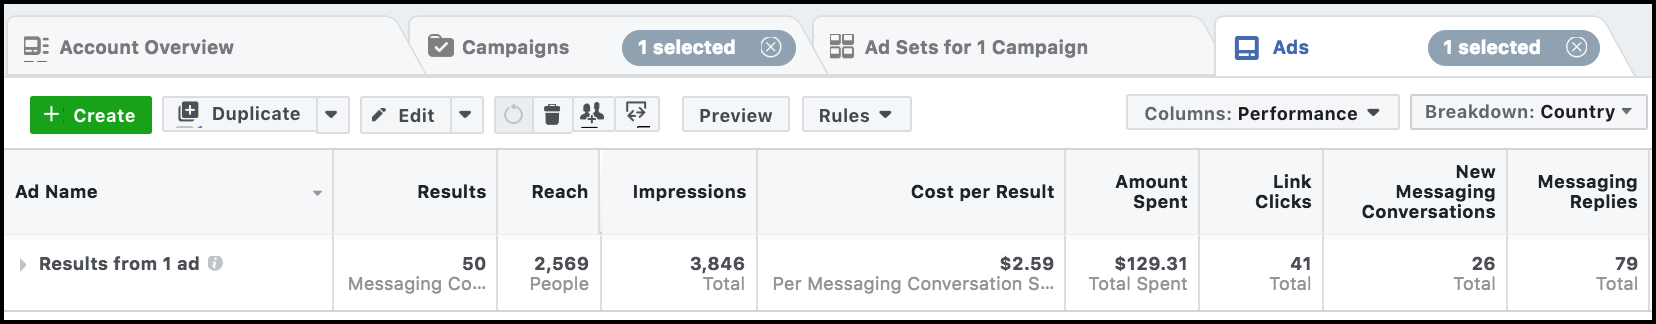 Messenger Ads for Blog Posts - facebook messenger ad results